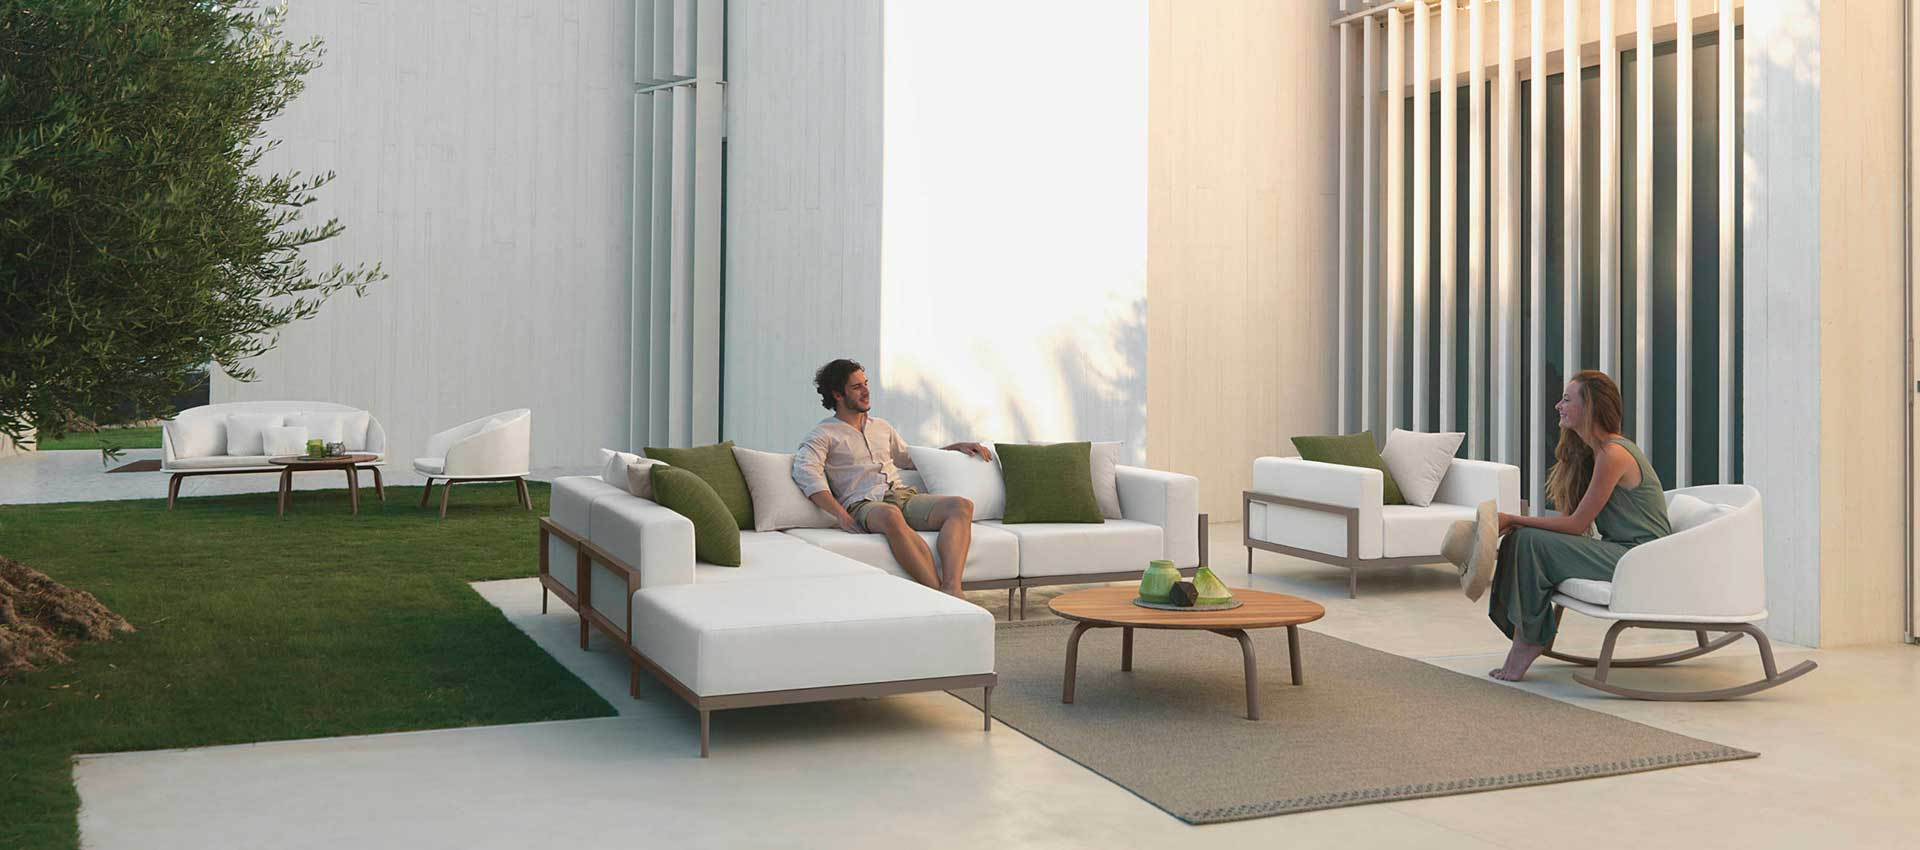 Outdoor sofas - armchairs - coffee tables